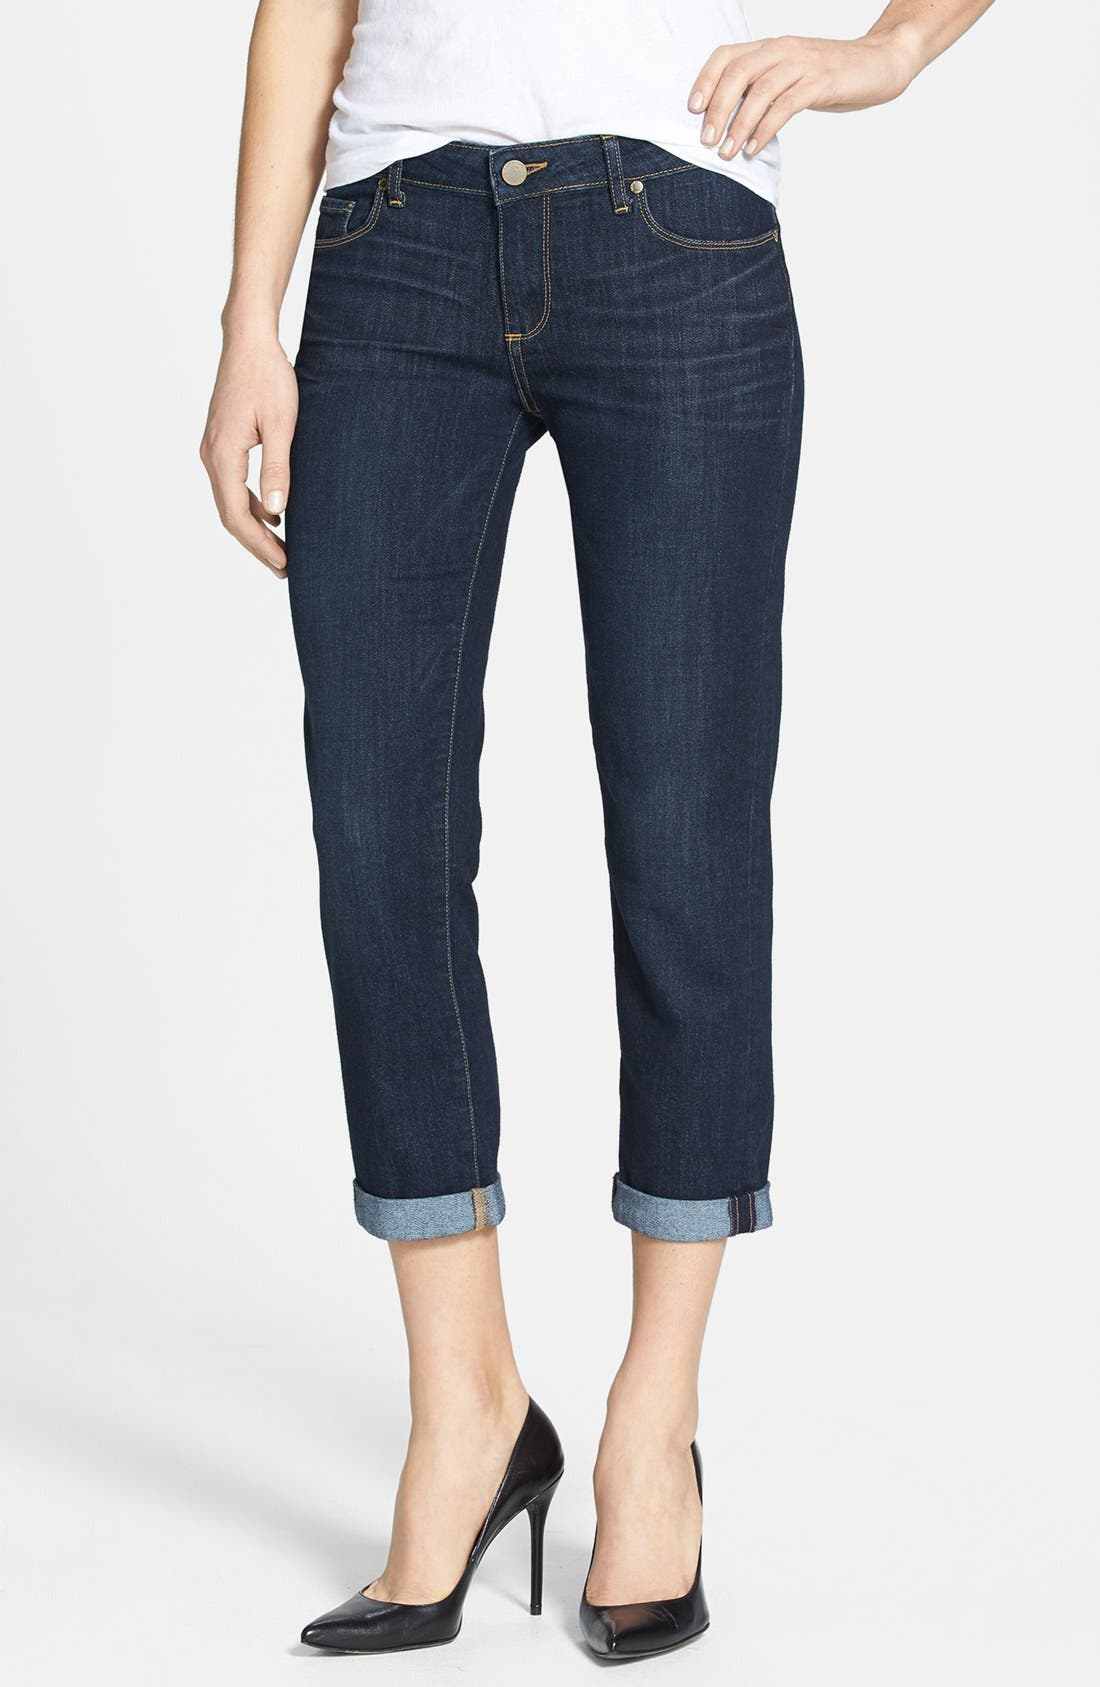 Alternate Image 1 Selected - Paige Denim 'Jimmy Jimmy' Crop Skinny Jeans (Highland)